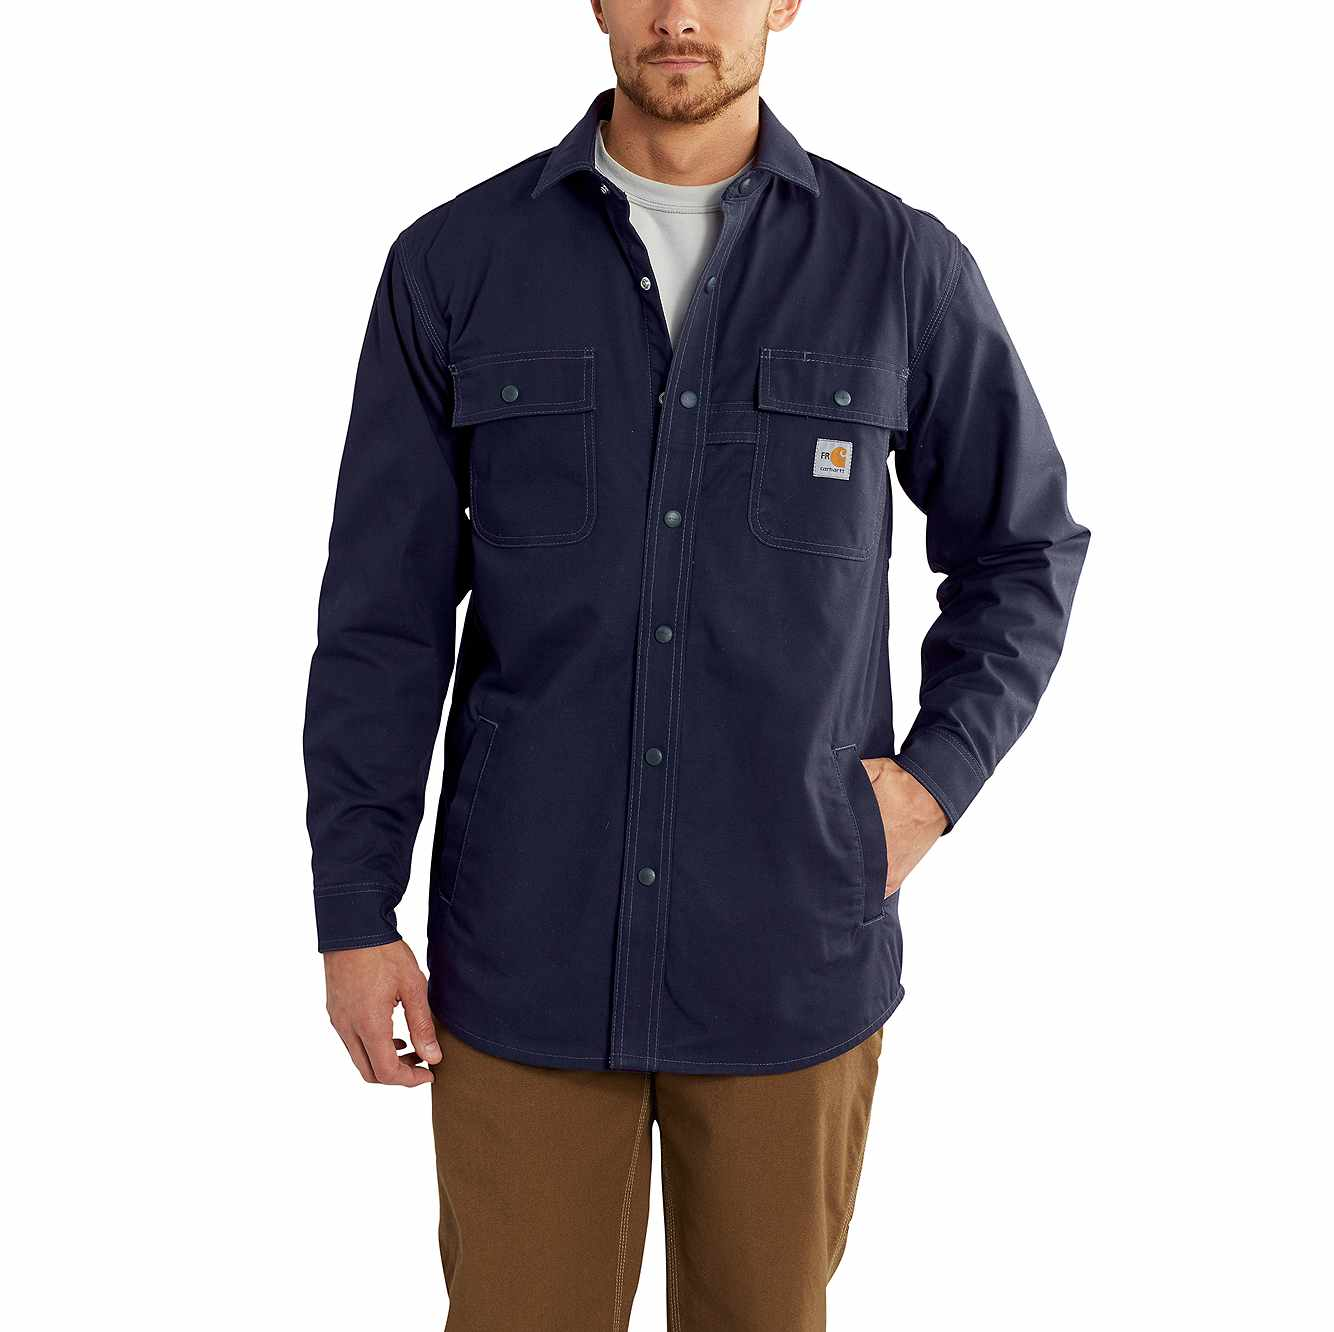 Picture of Flame-Resistant Full Swing® Quick Duck® Shirt Jac in Dark Navy